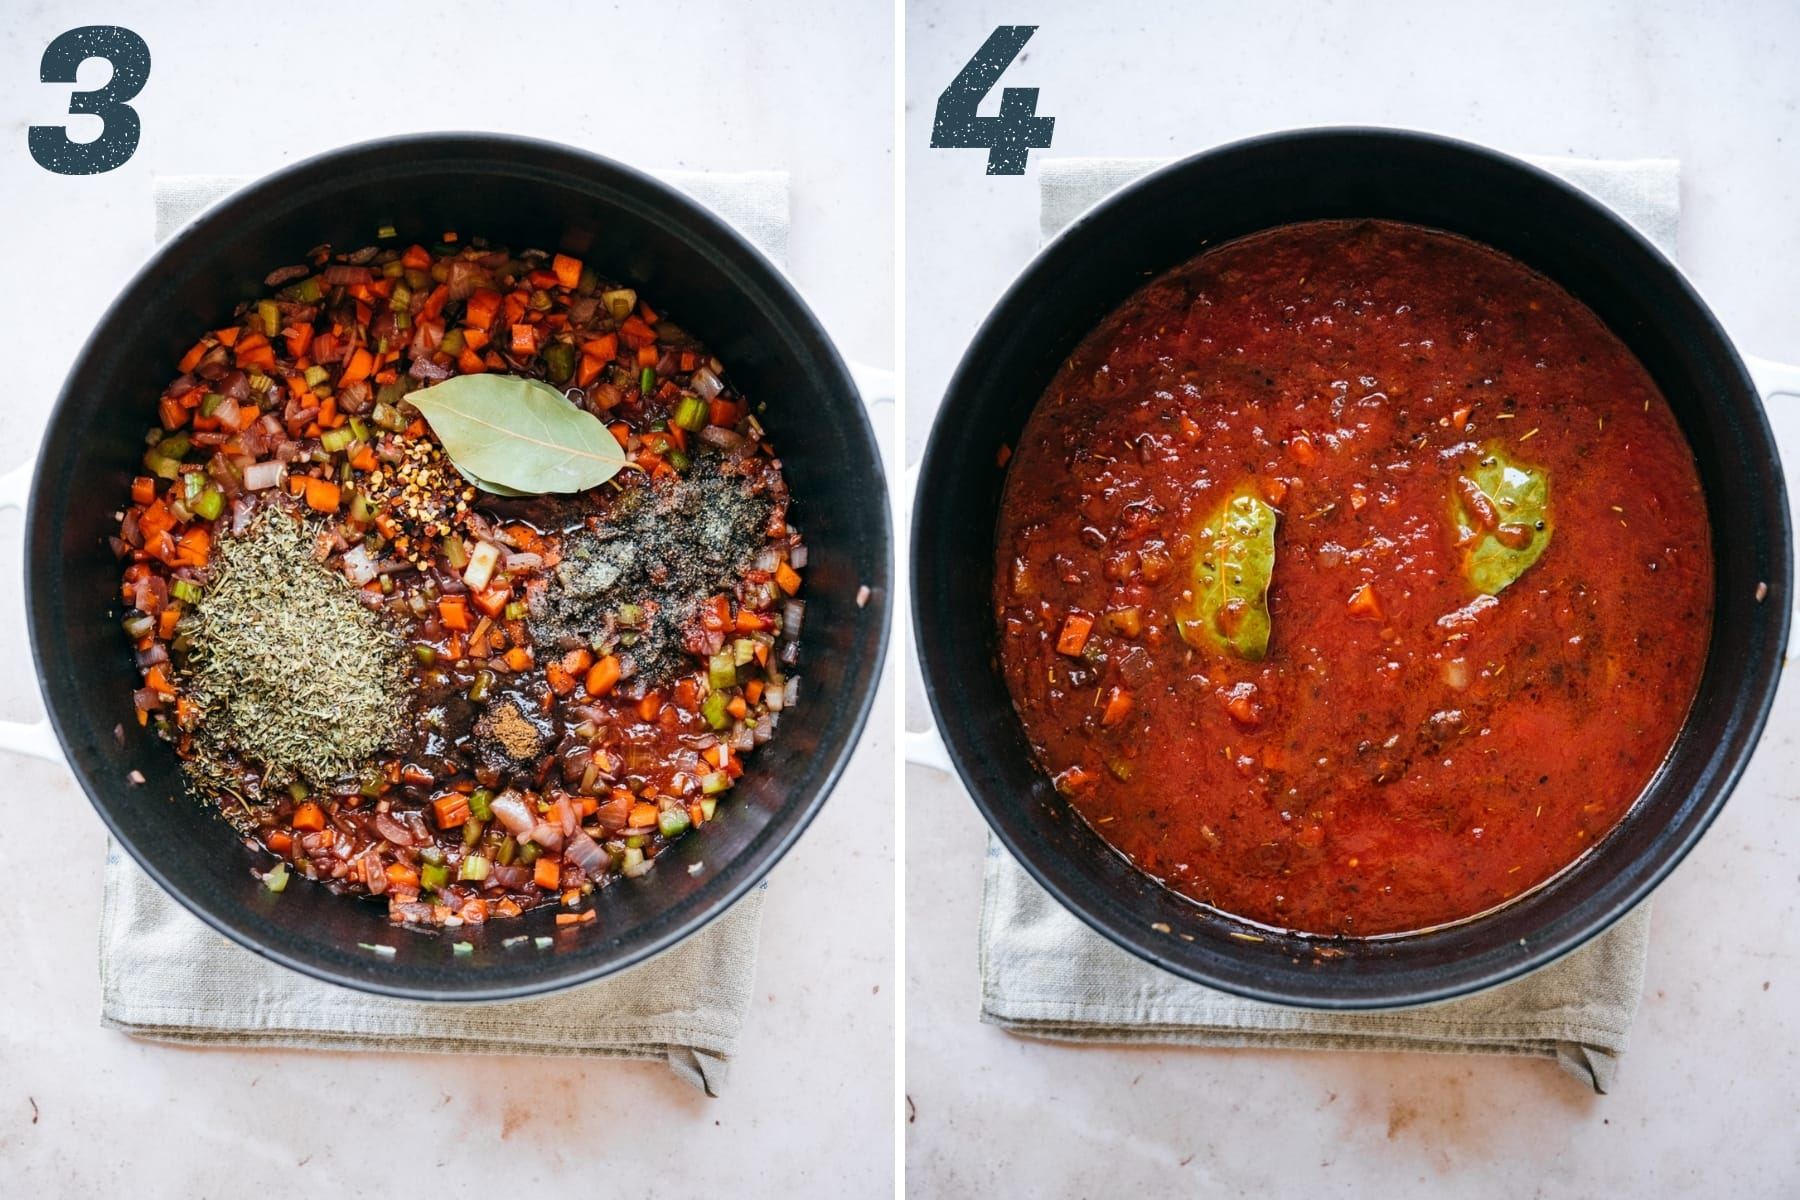 before and after adding crushed tomatoes to lentil bolognese sauce in a large pot.